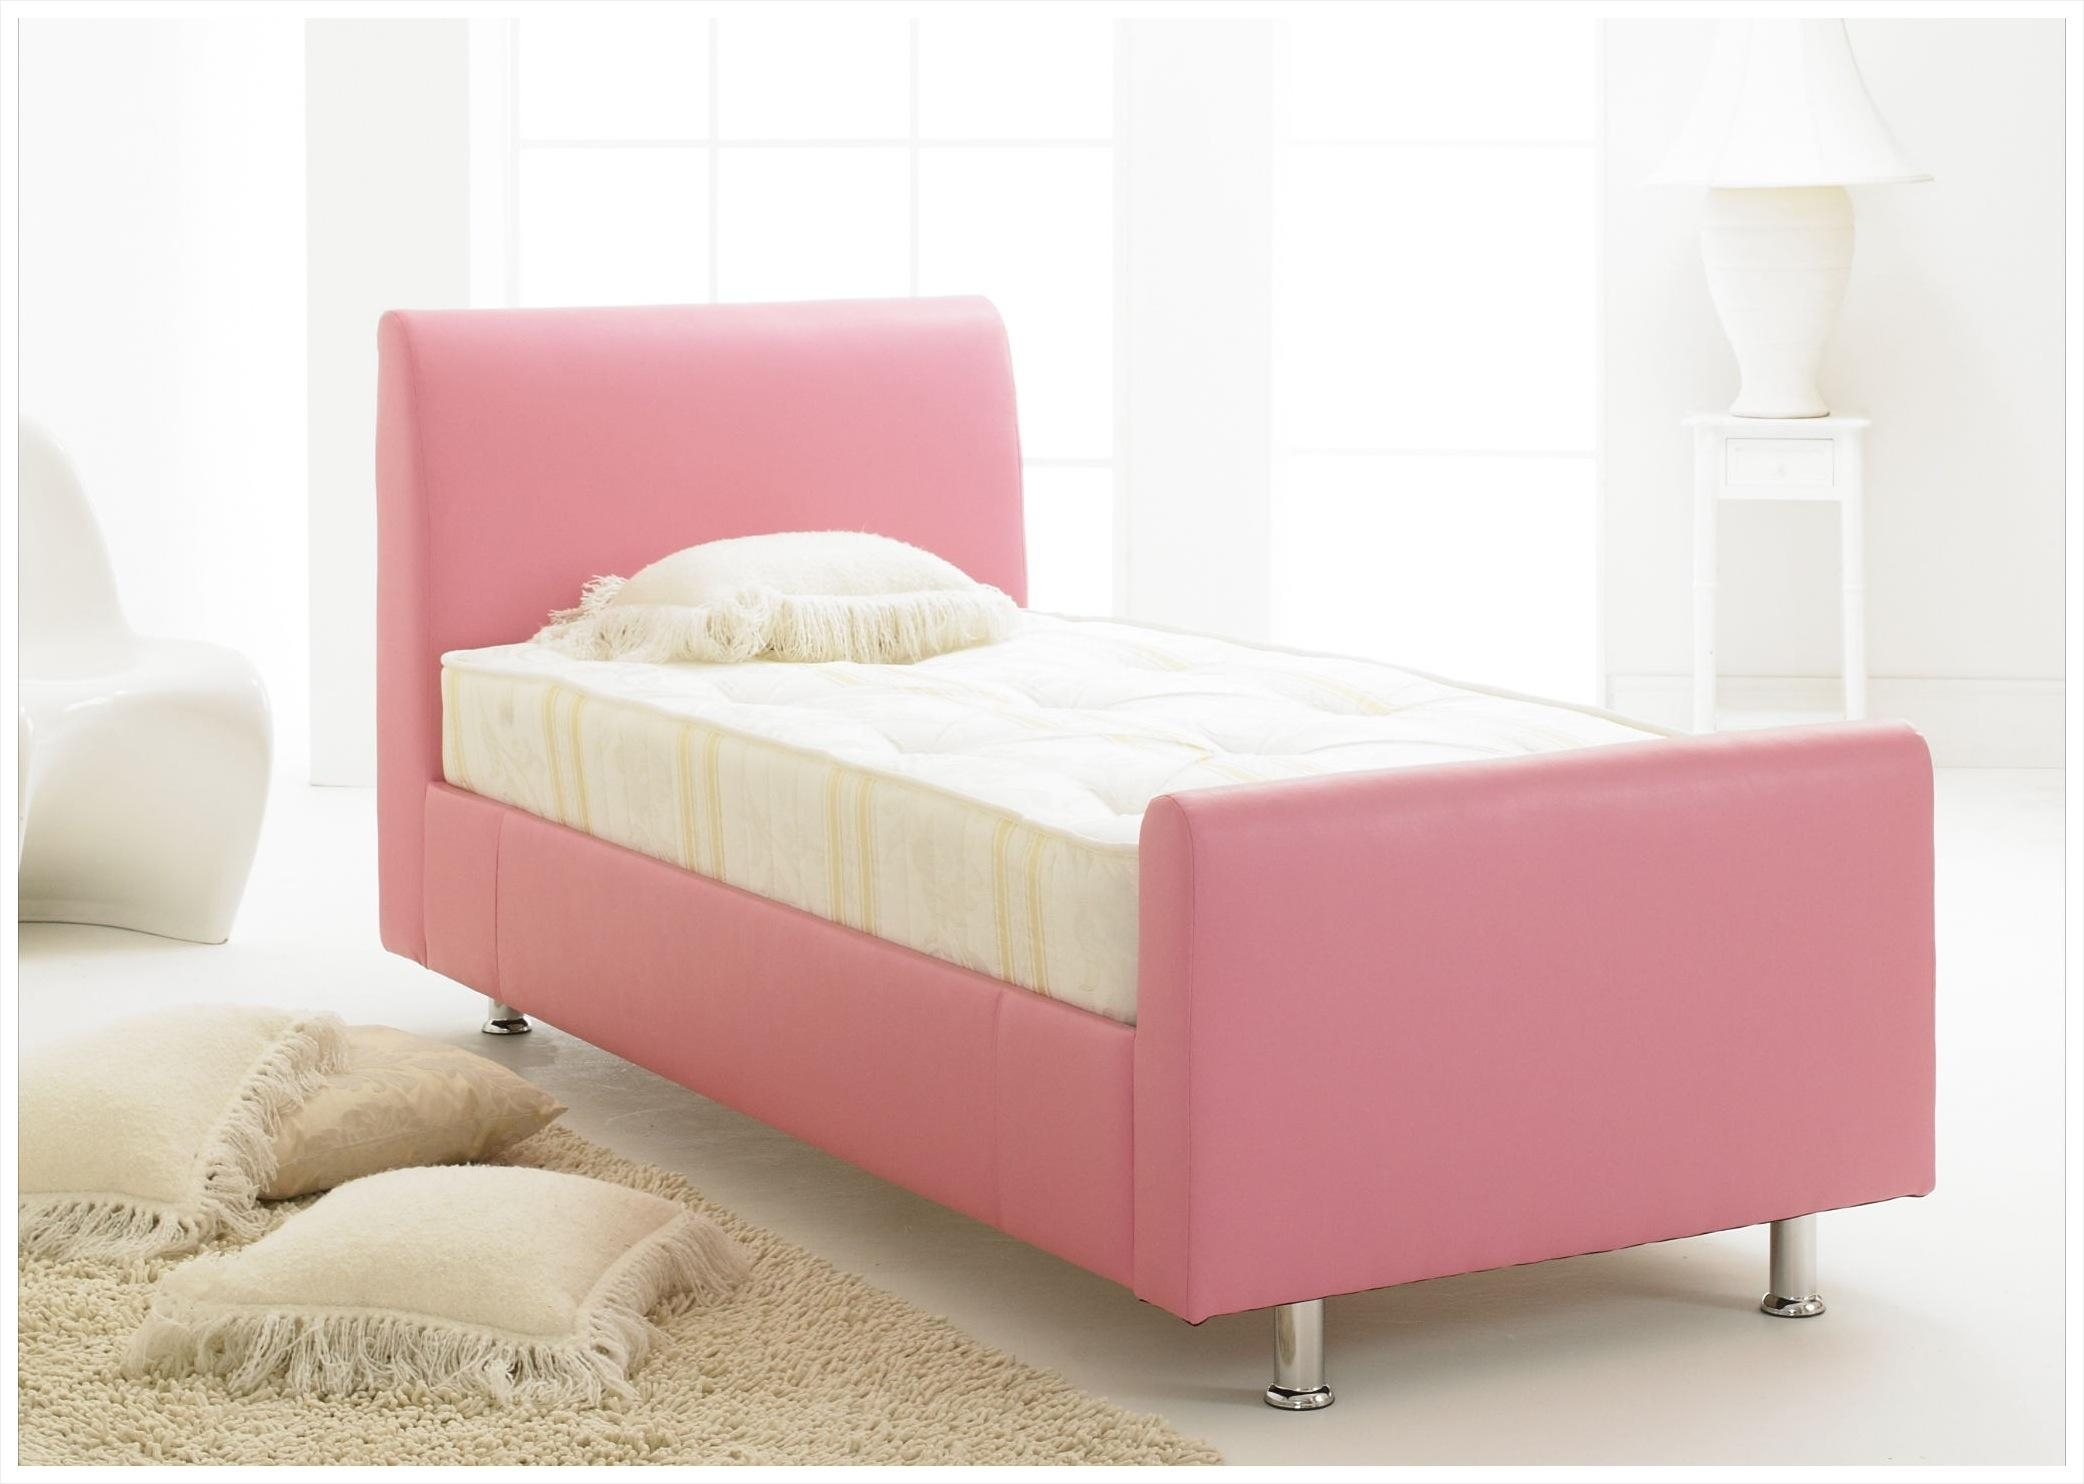 Renovation Small Beds Pink Bed Ideas Scheme White Mattress Sofa Intended For Small Bedroom Sofas (View 16 of 20)